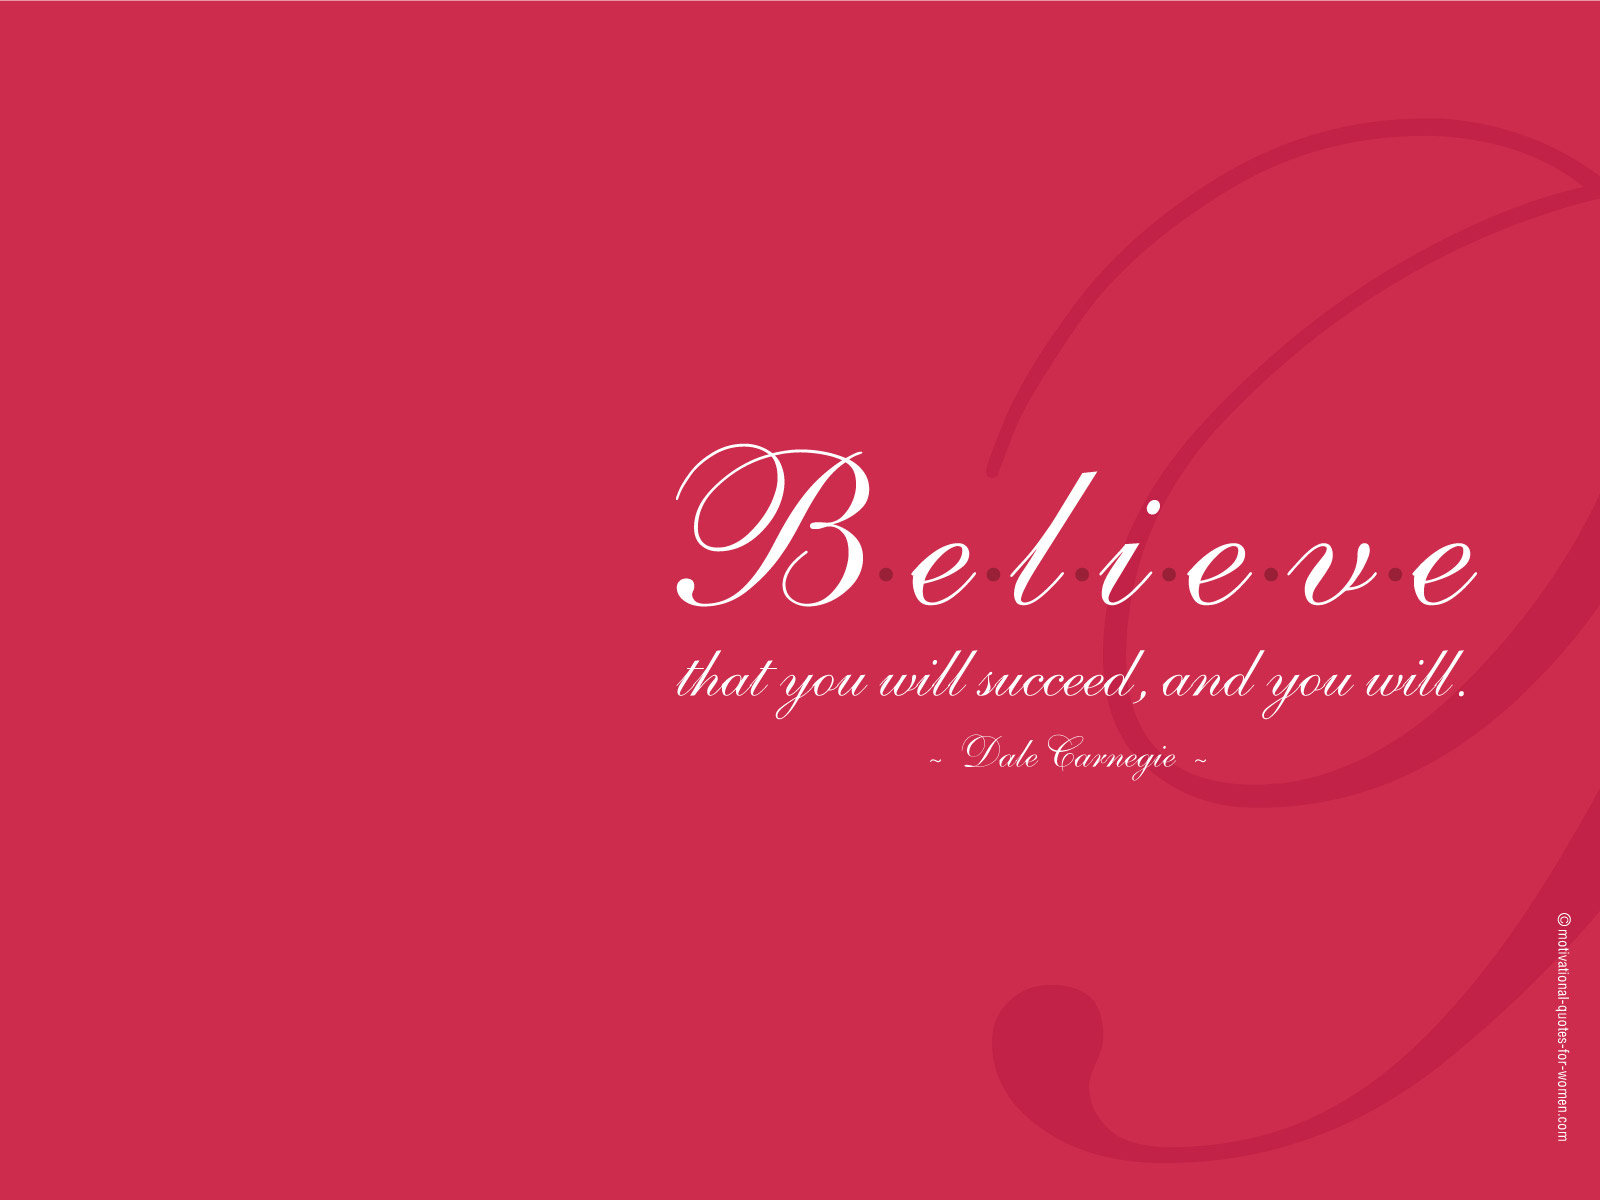 Positive Quotes Wallpaper Download 1600x1200